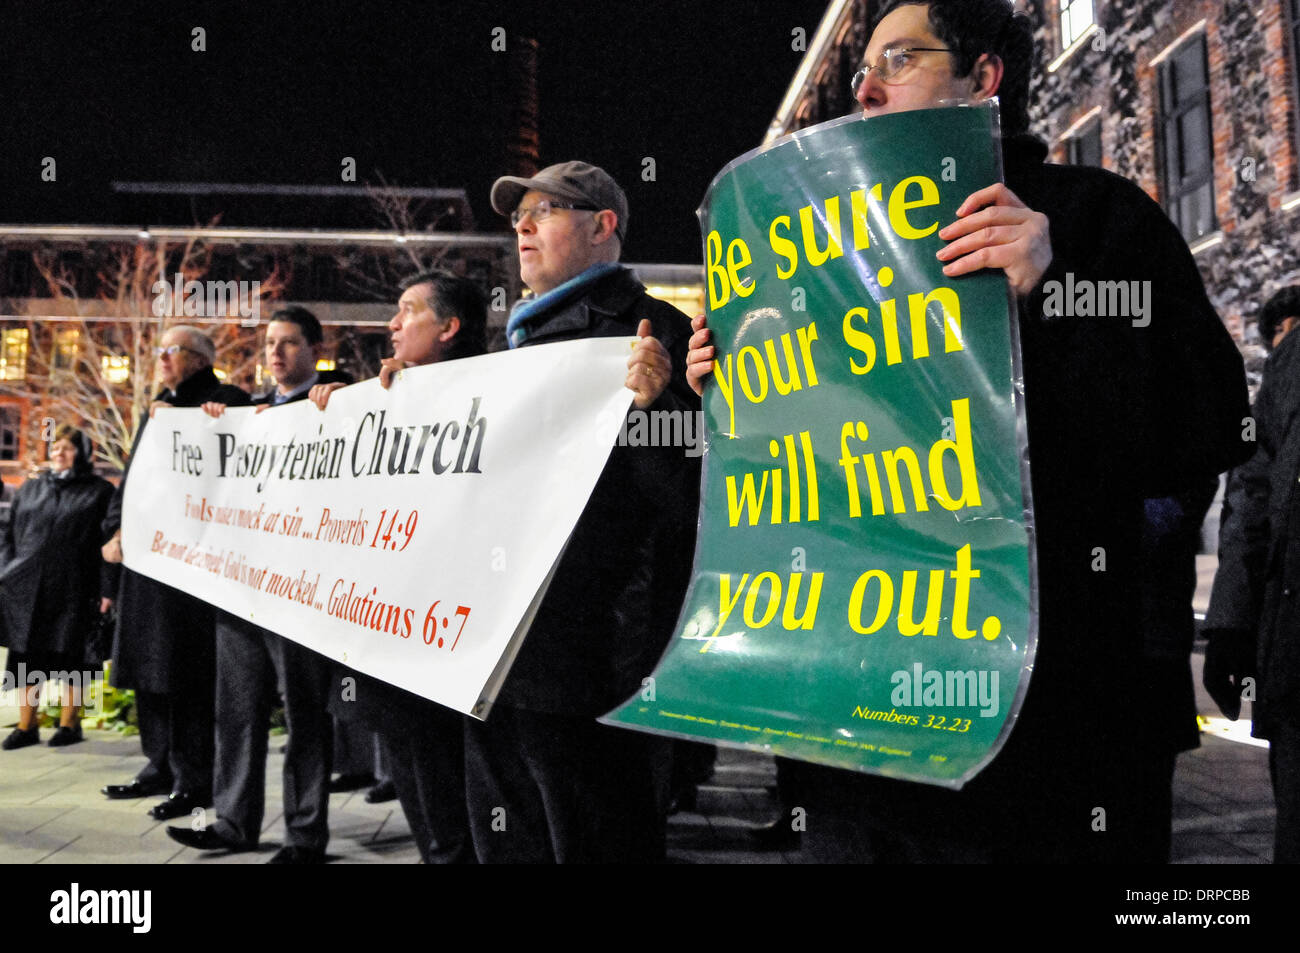 """Newtownabbey, Northern Ireland. 30 Jan 2014  - Protesters from the Free Presbyterian Church hold posters saying """"Be sure your sin will find you out"""", while they sing hymns outside a theatre, which is hosting a play they consider to be 'blasphemous' Credit:  Stephen Barnes/Alamy Live News Stock Photo"""